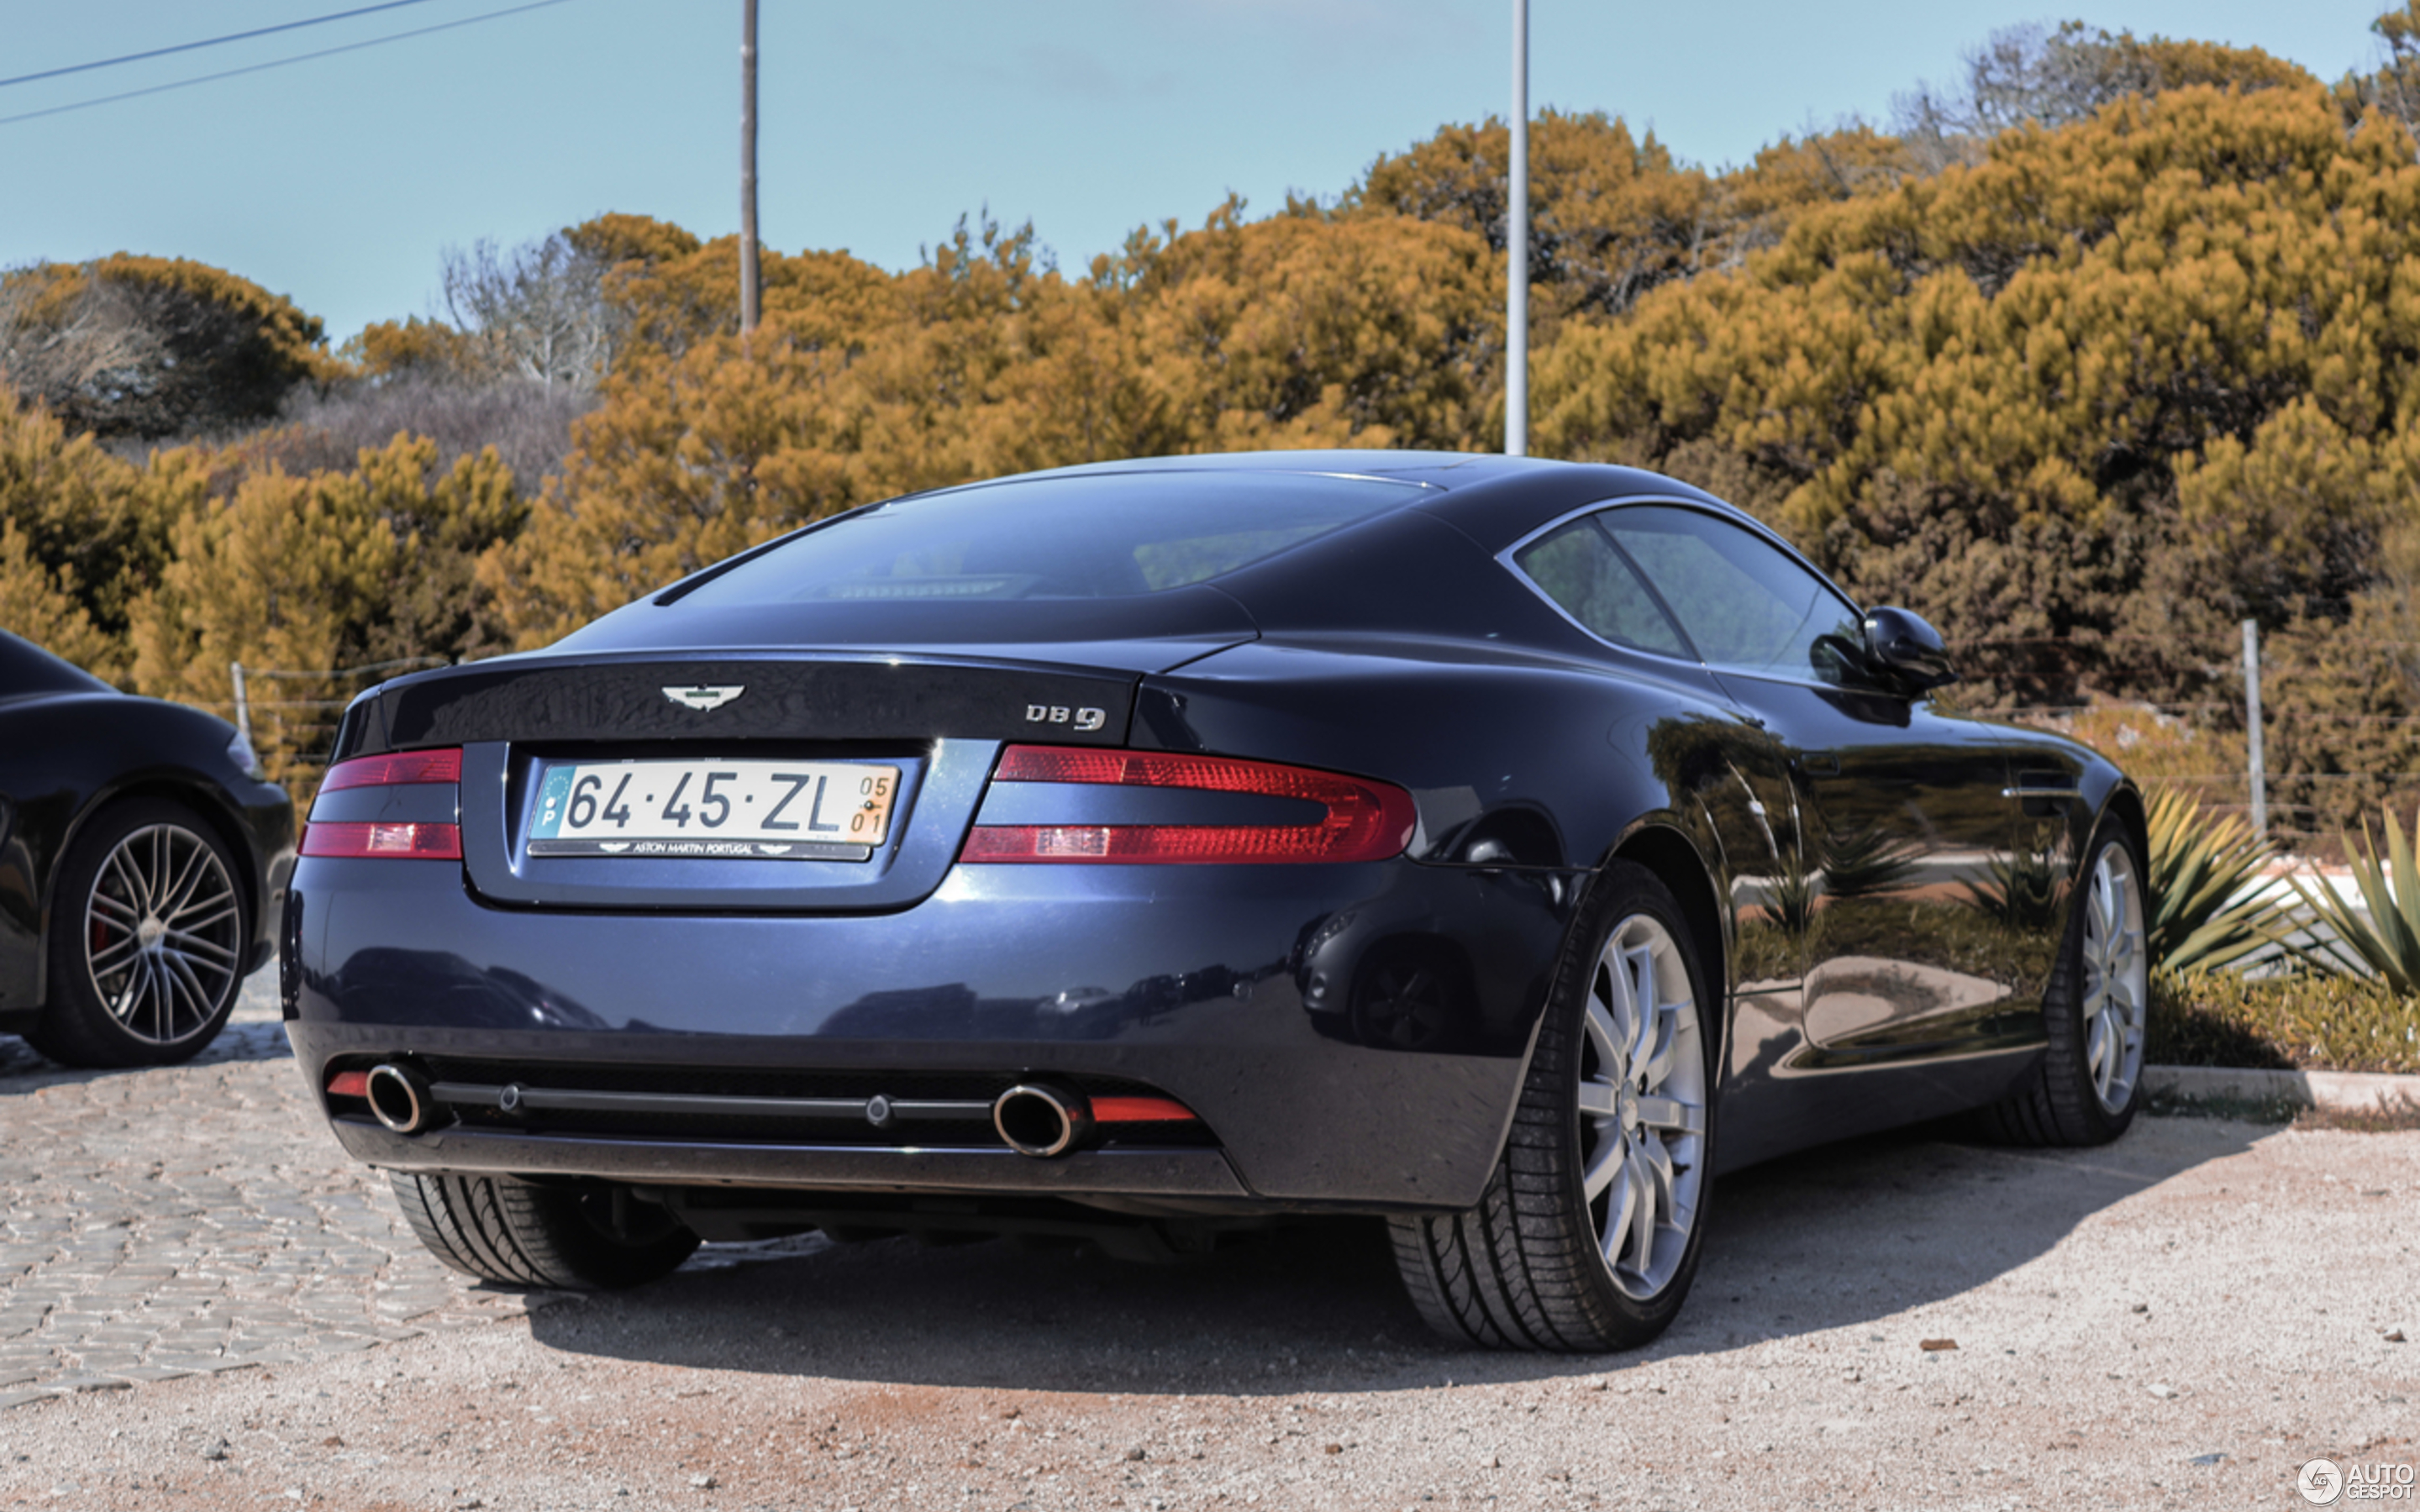 Aston Martin Db9 2019 Albumccars Cars Images Collection